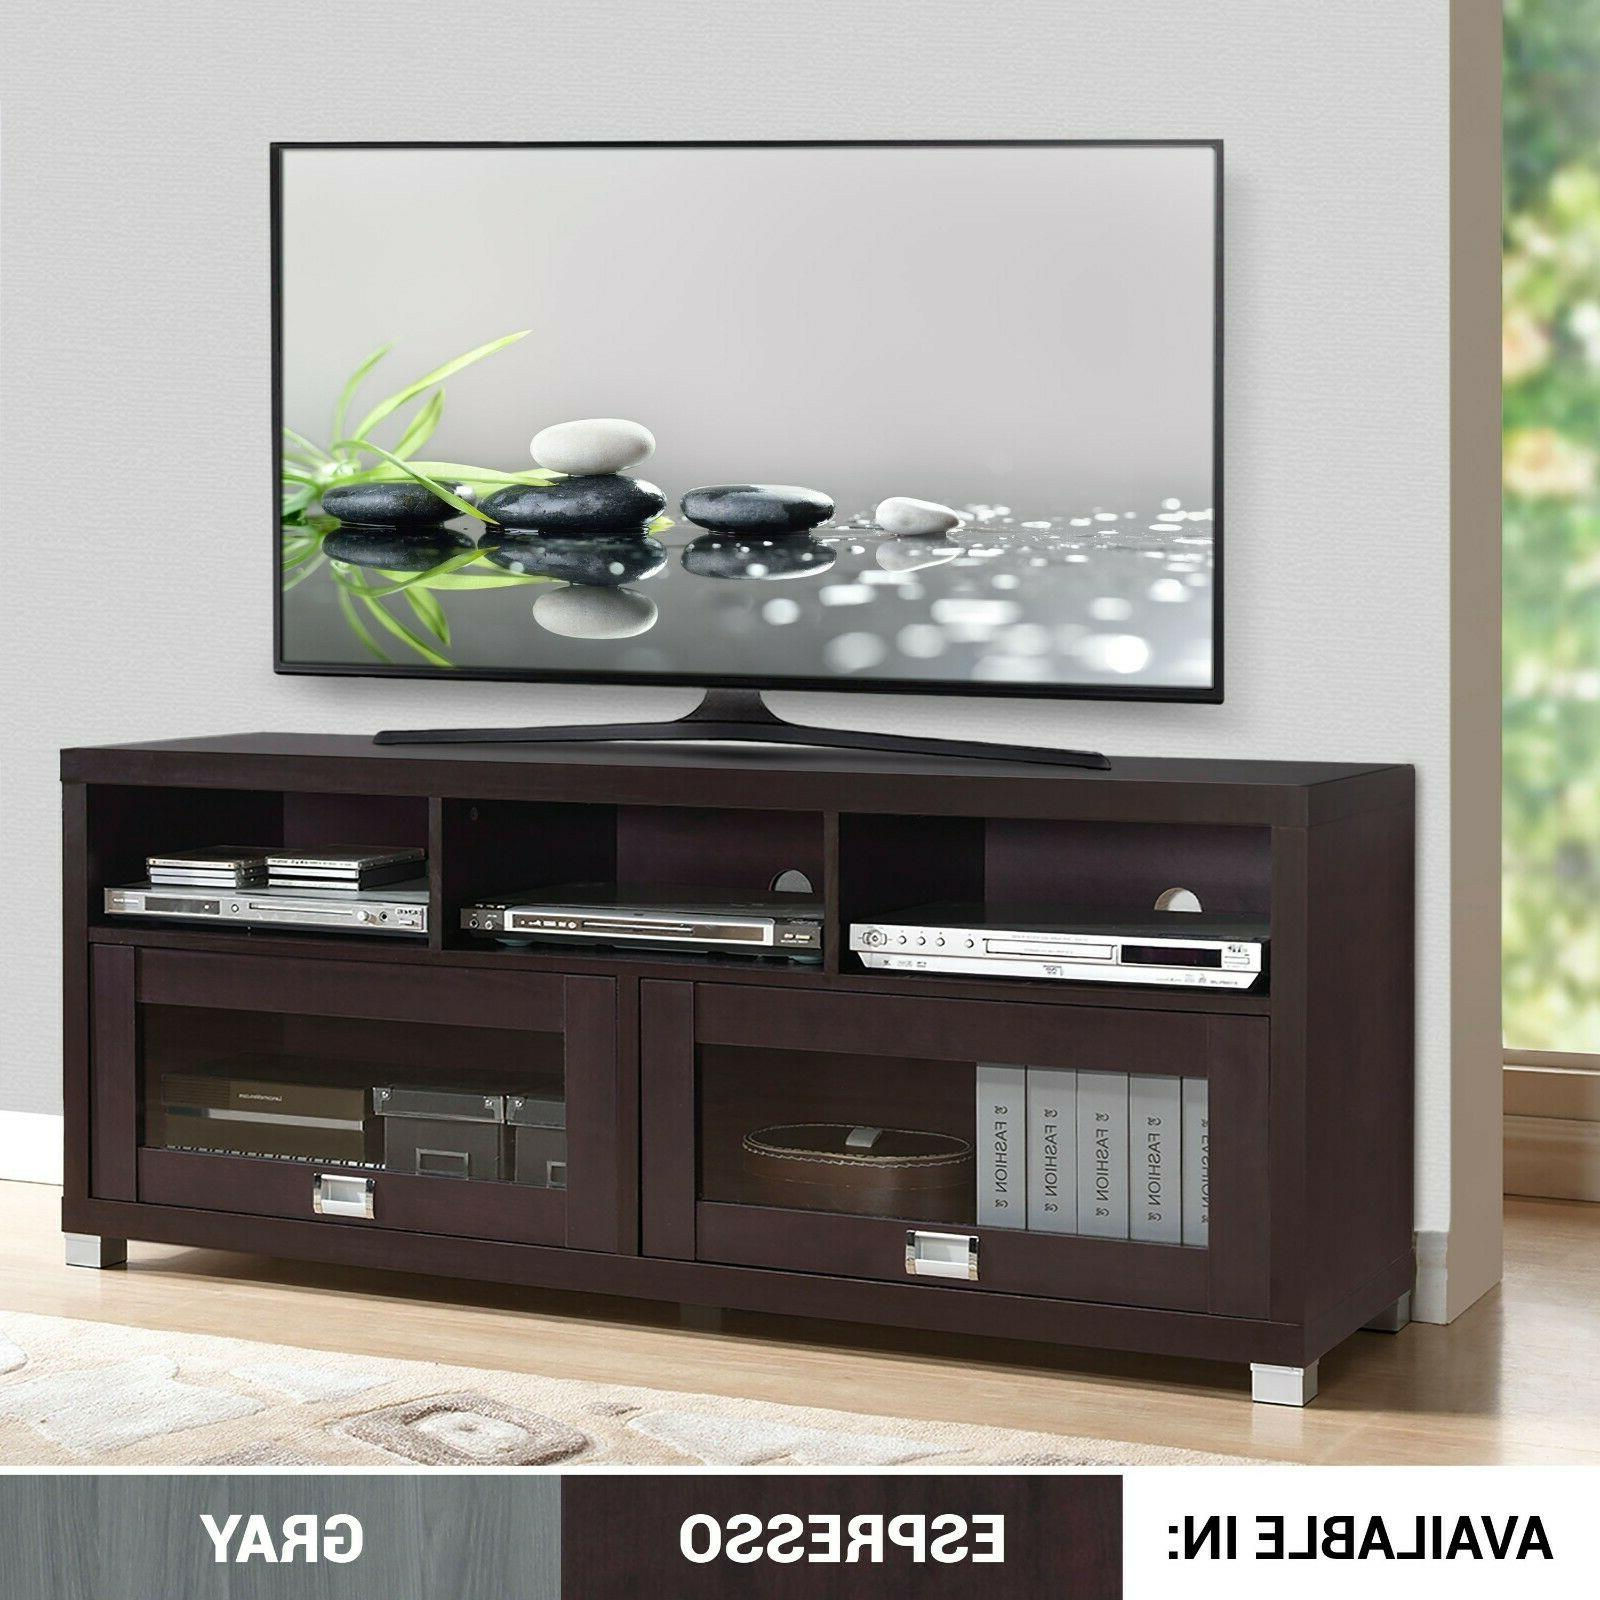 58 inches durbin tv stand for 75